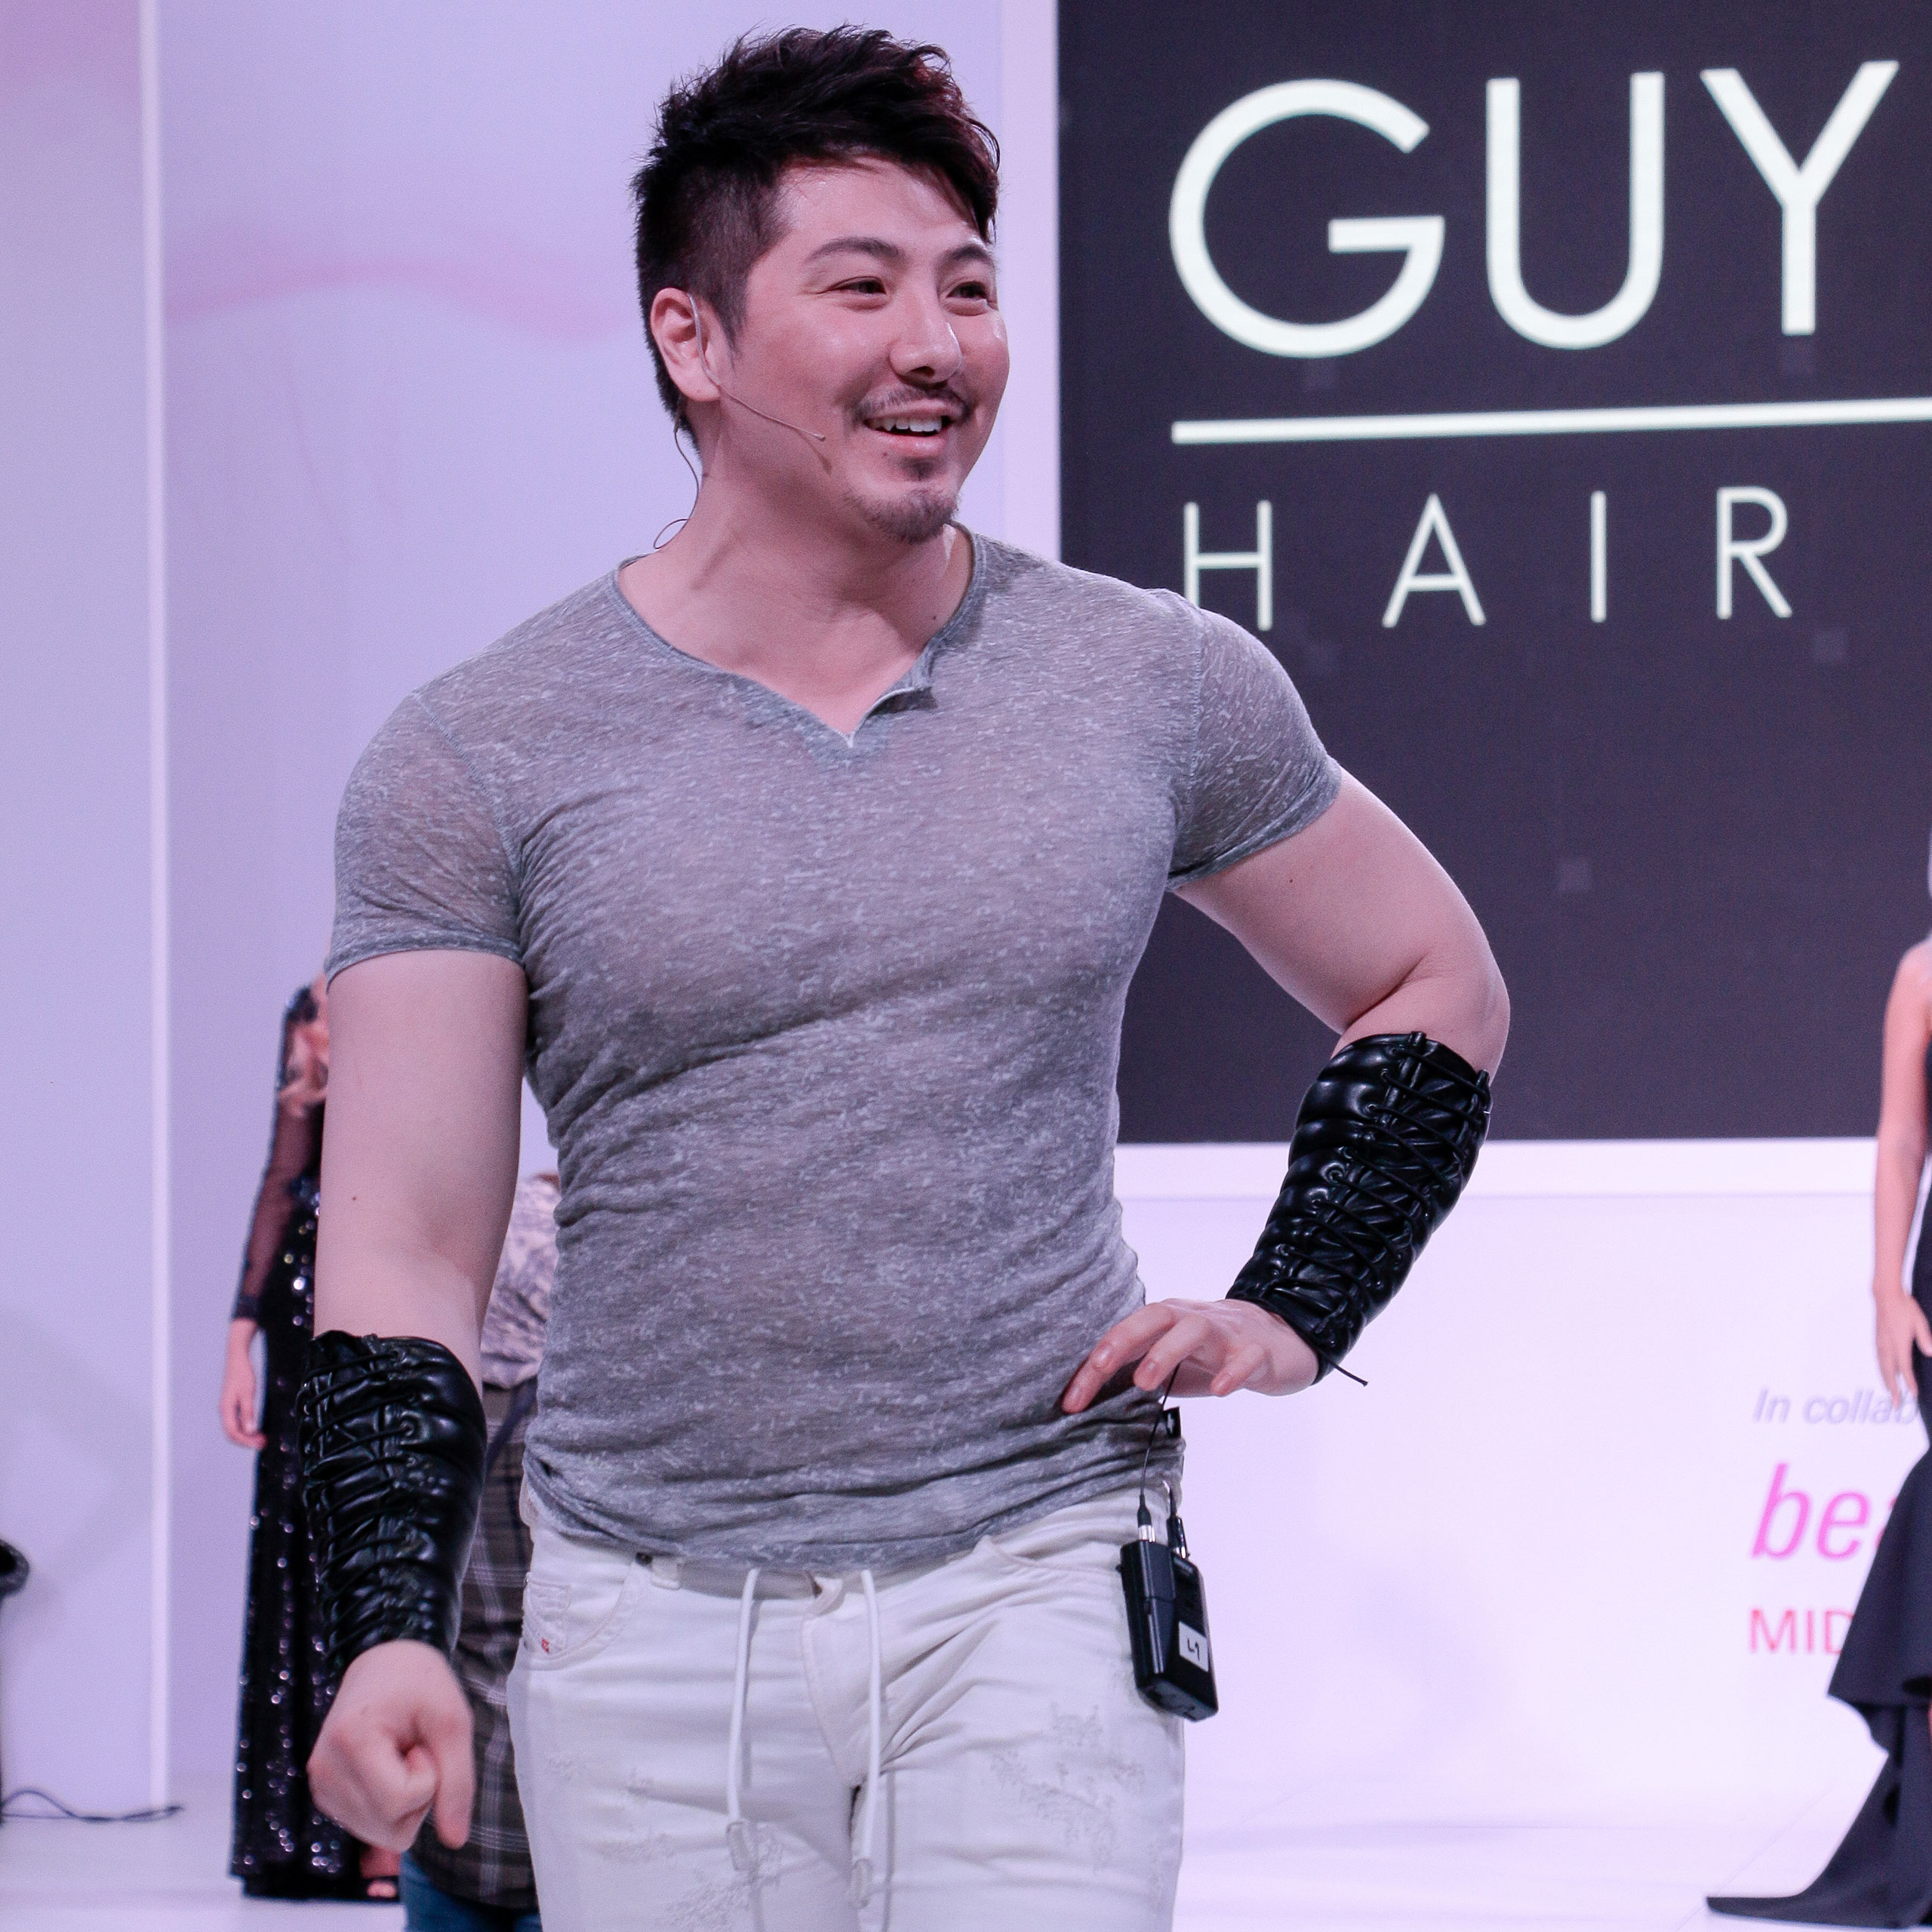 Beautyworld Middle East - Hollywood hair artist Guy Tang headlines star act of professional stylists at Beautyworld Middle East 2017